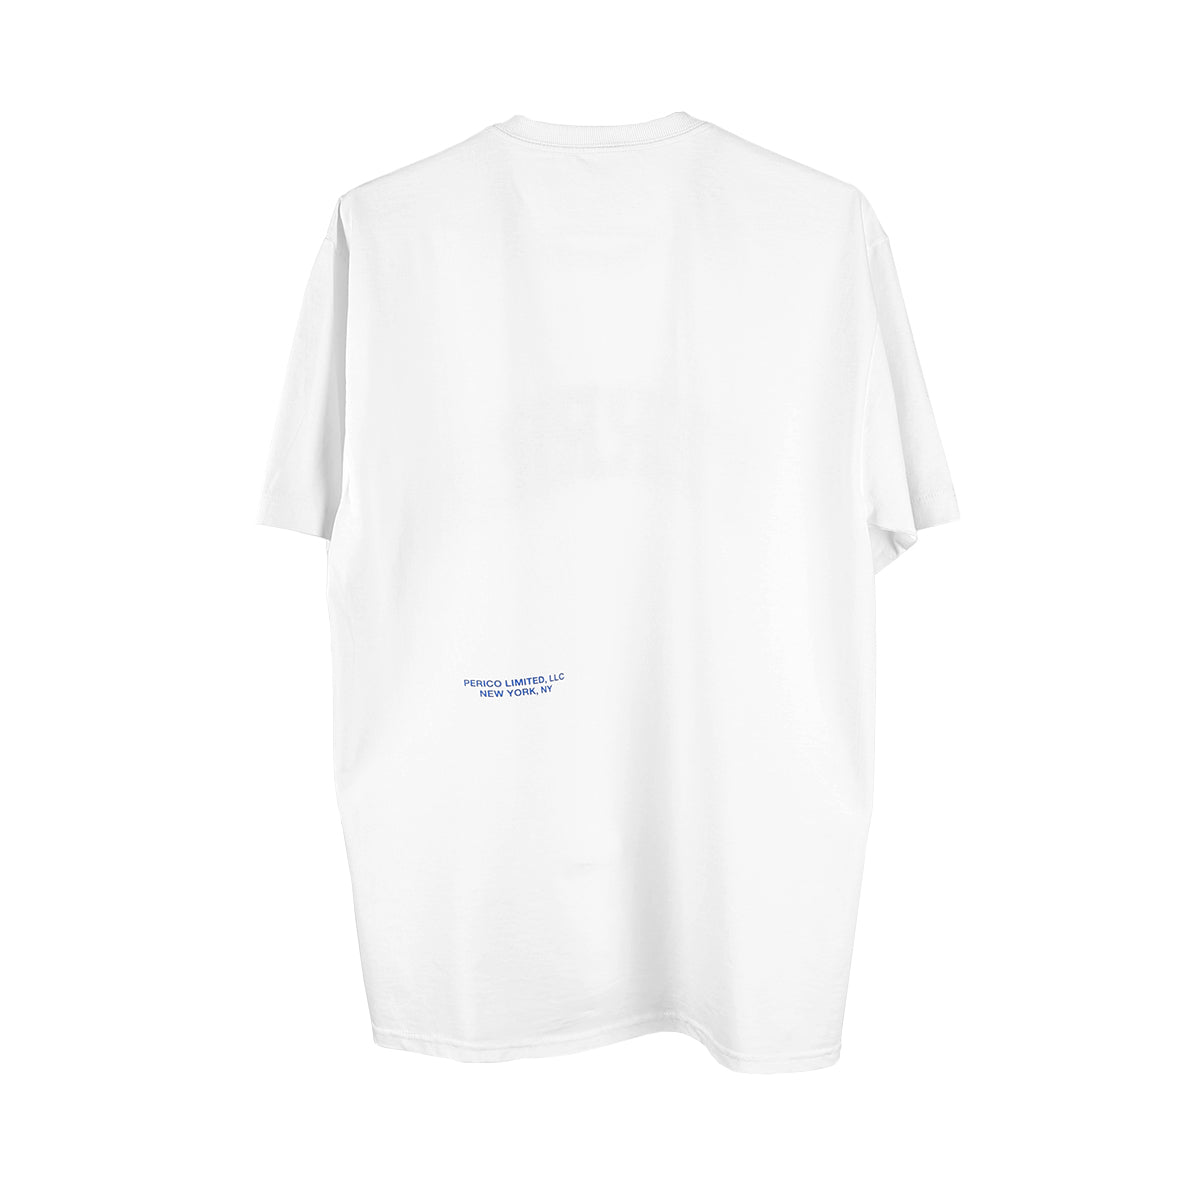 Yerrrr - Knicks White S/S